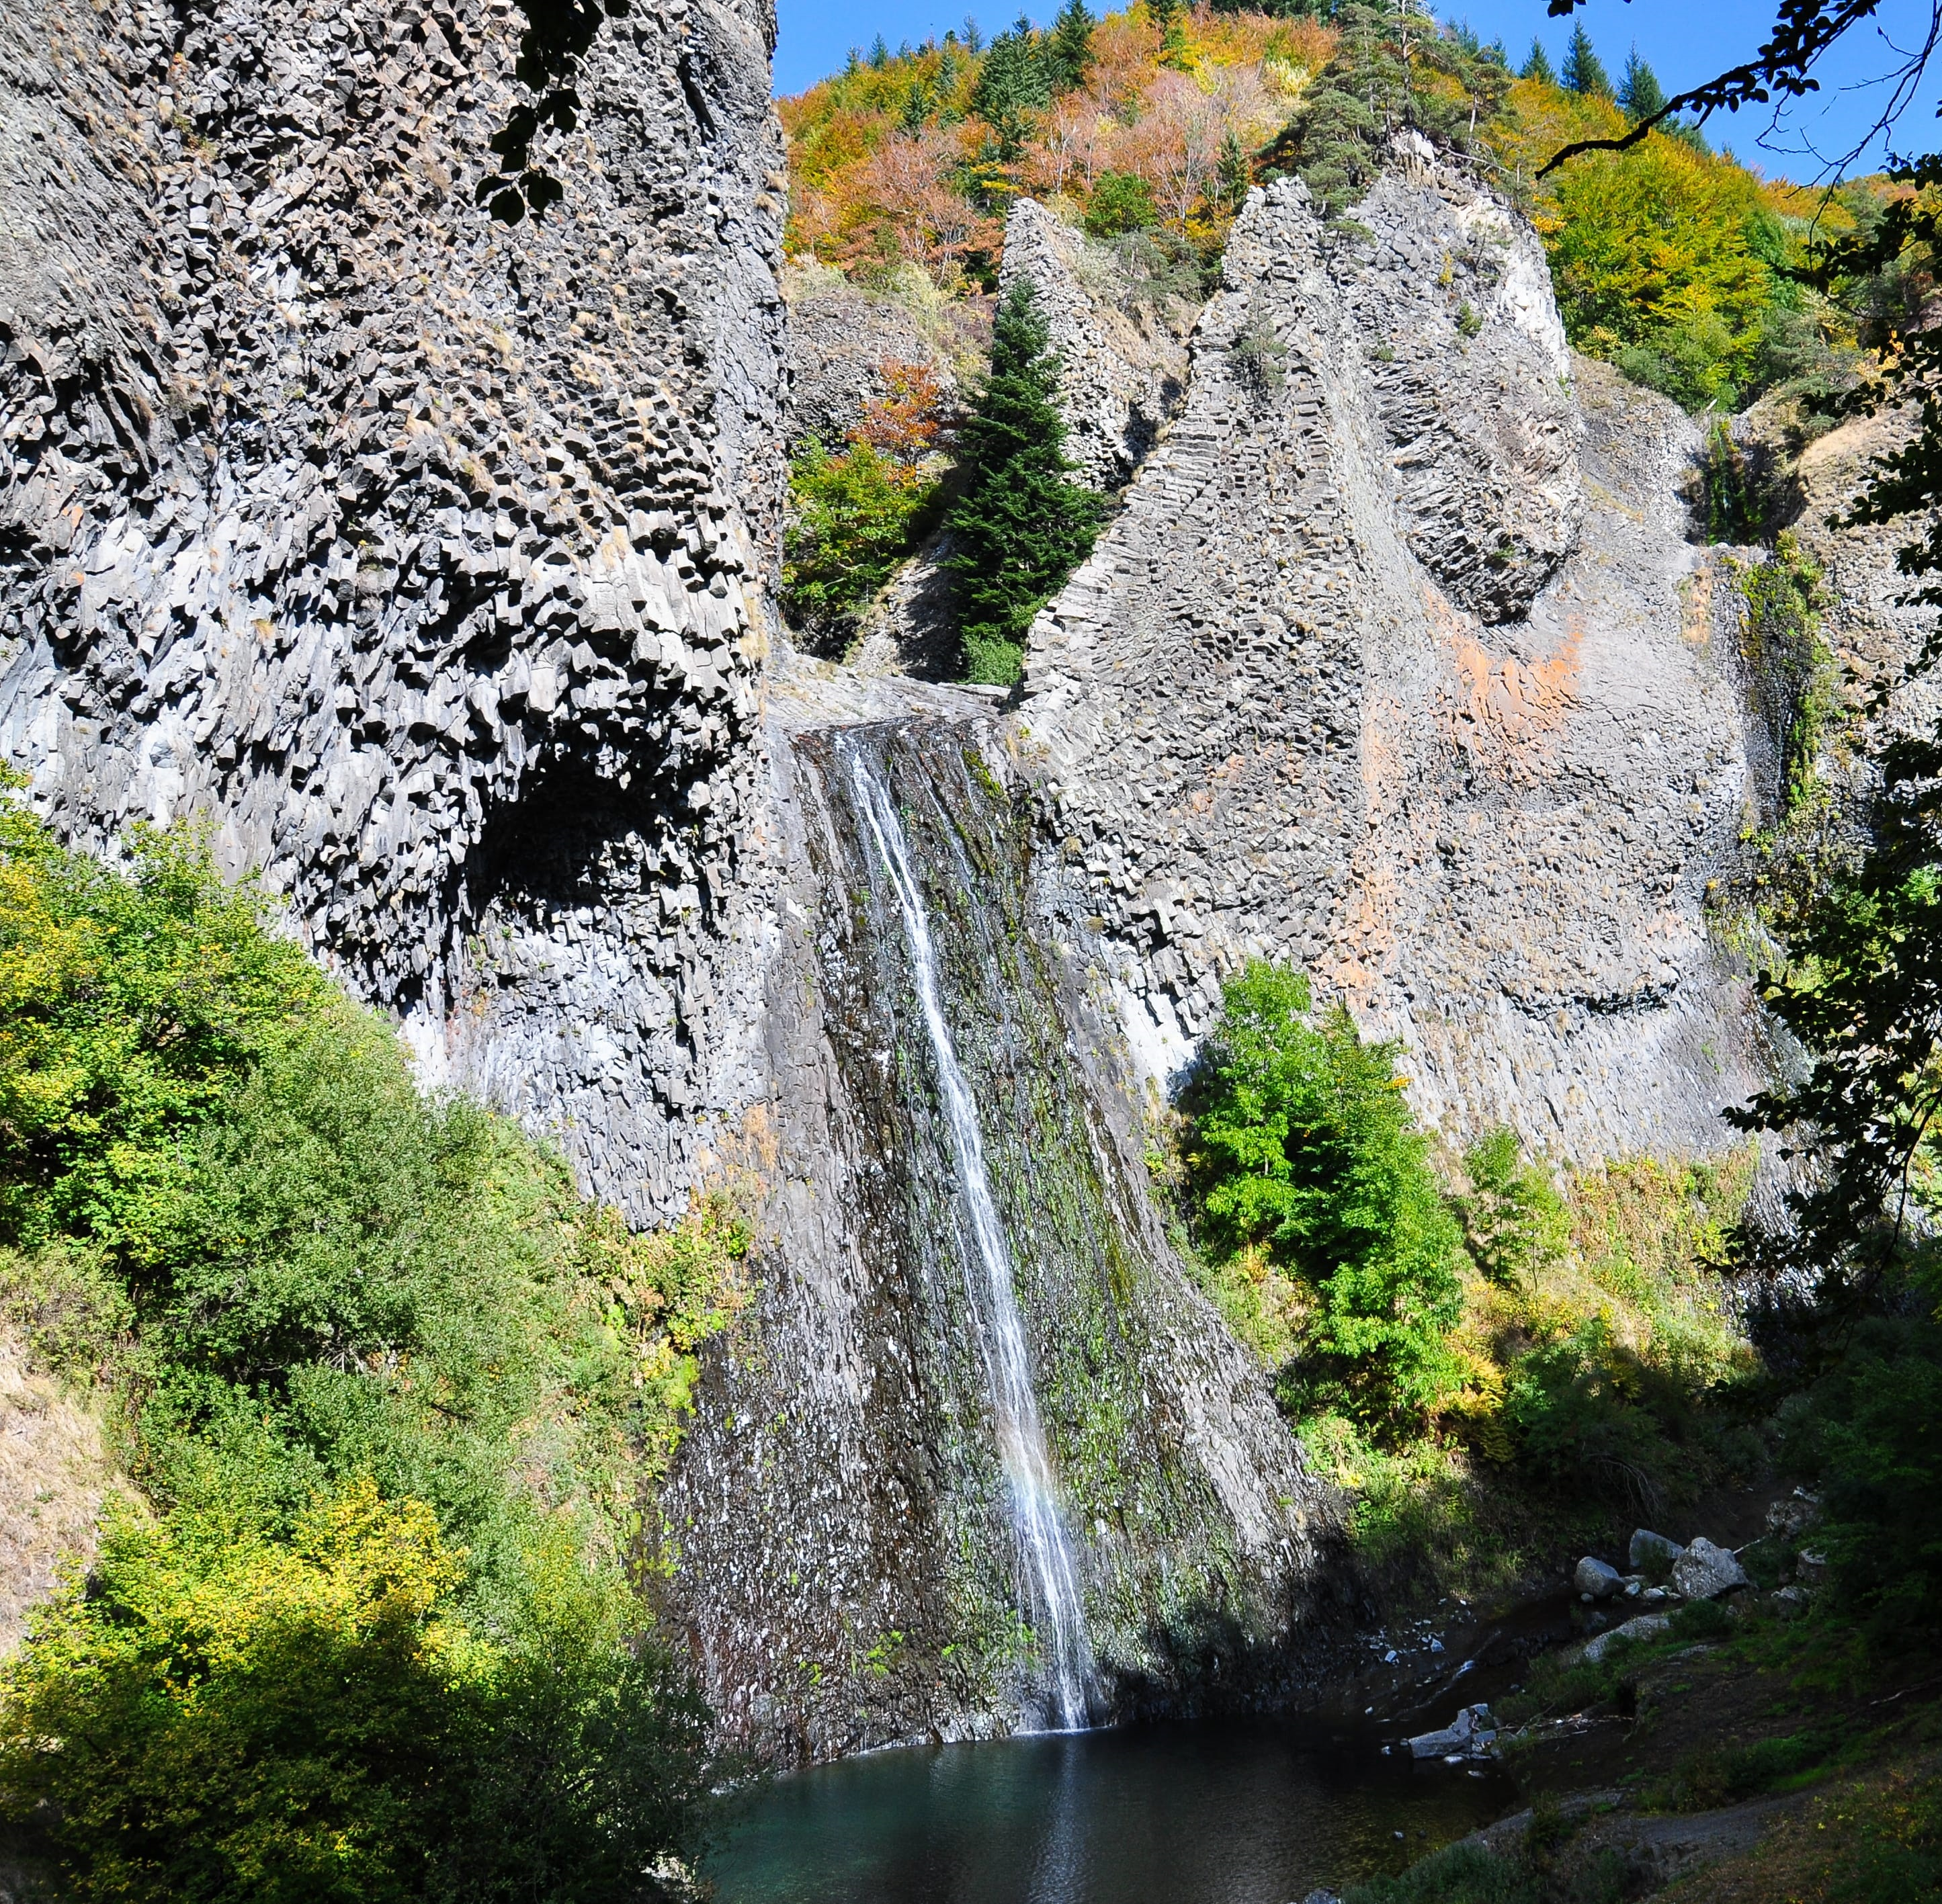 min-voyage-nature-cascade-ray-pic-ardèche- crédit Renaud-goud-min